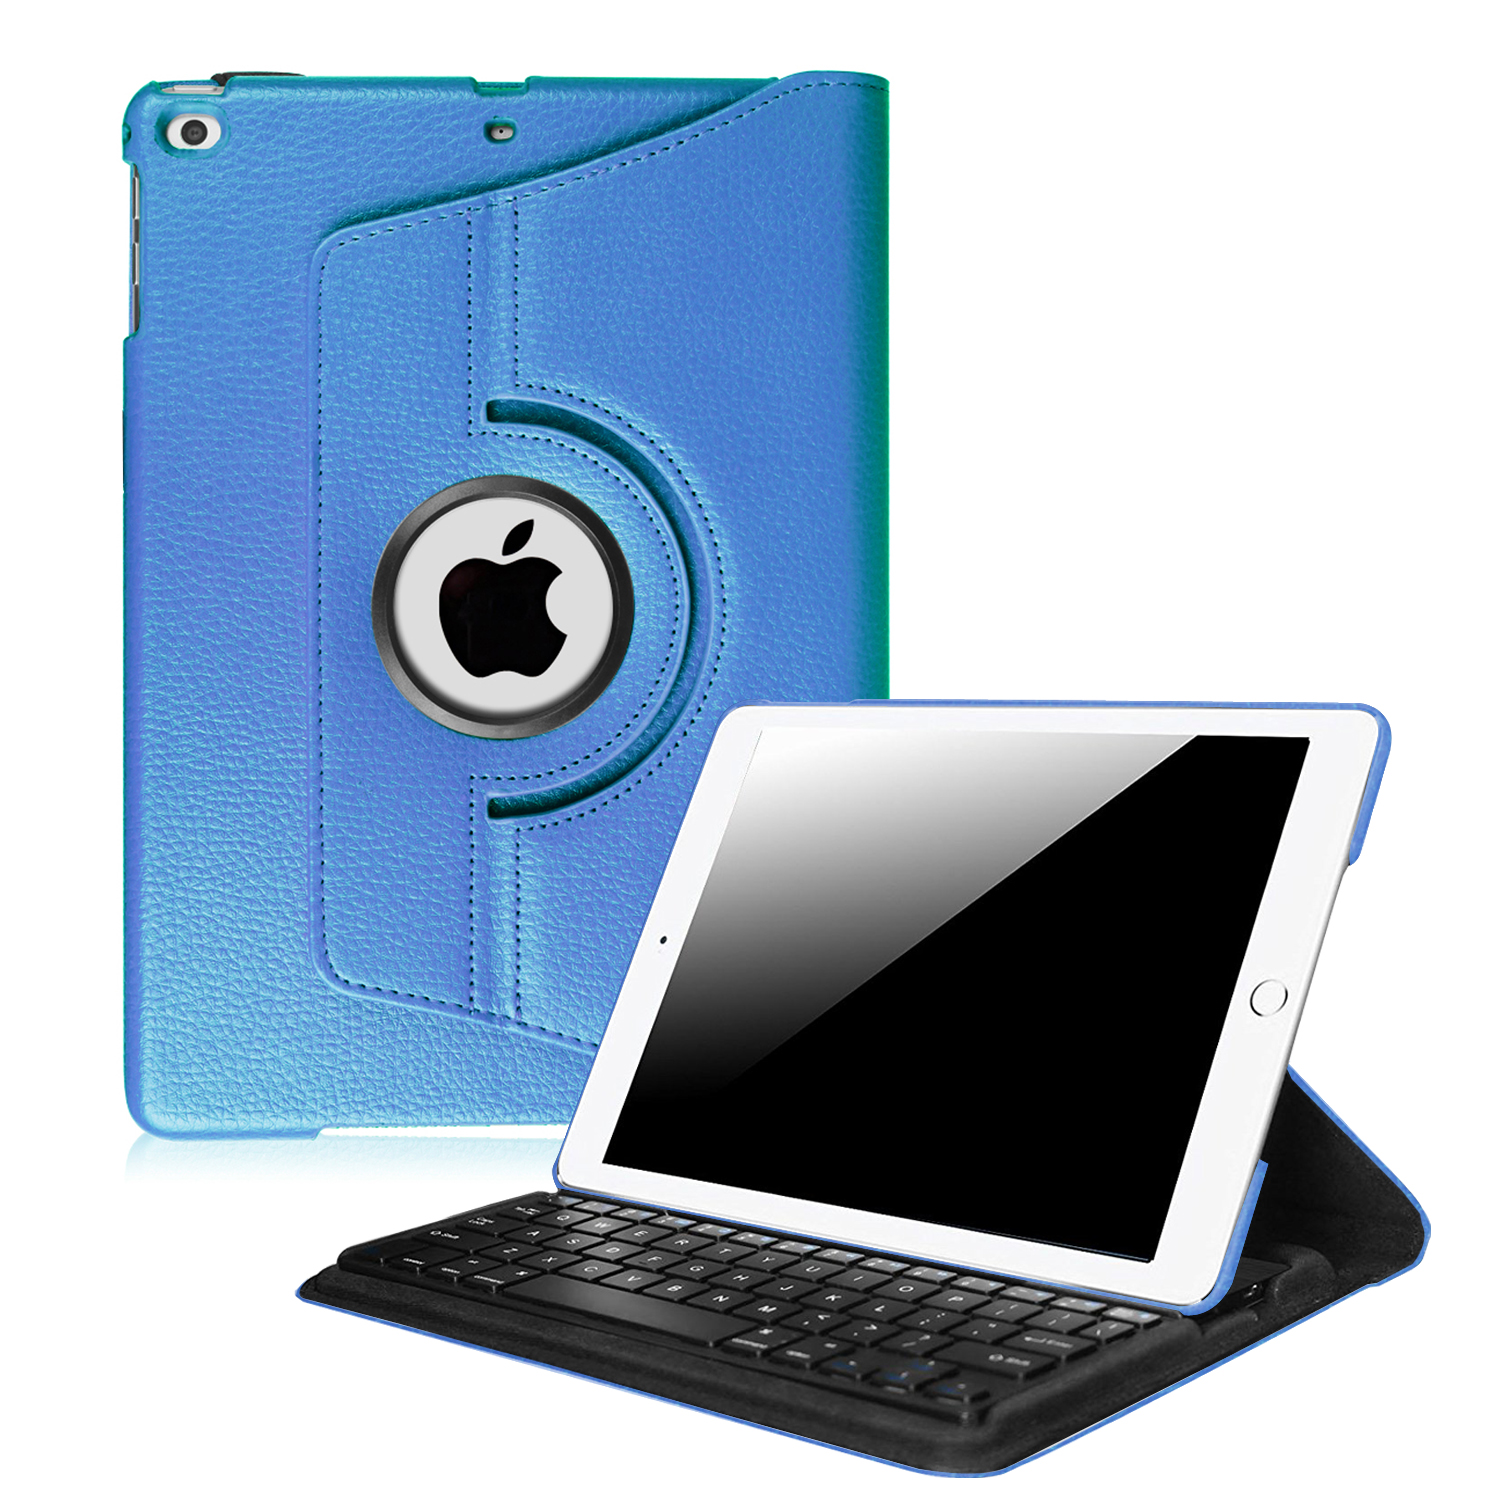 Fintie 360 Degree Rotating Keyboard Case Cover for iPad 9.7 inch 2017 2018  iPad Air   iPad Air 2, Royal Blue by Fintie